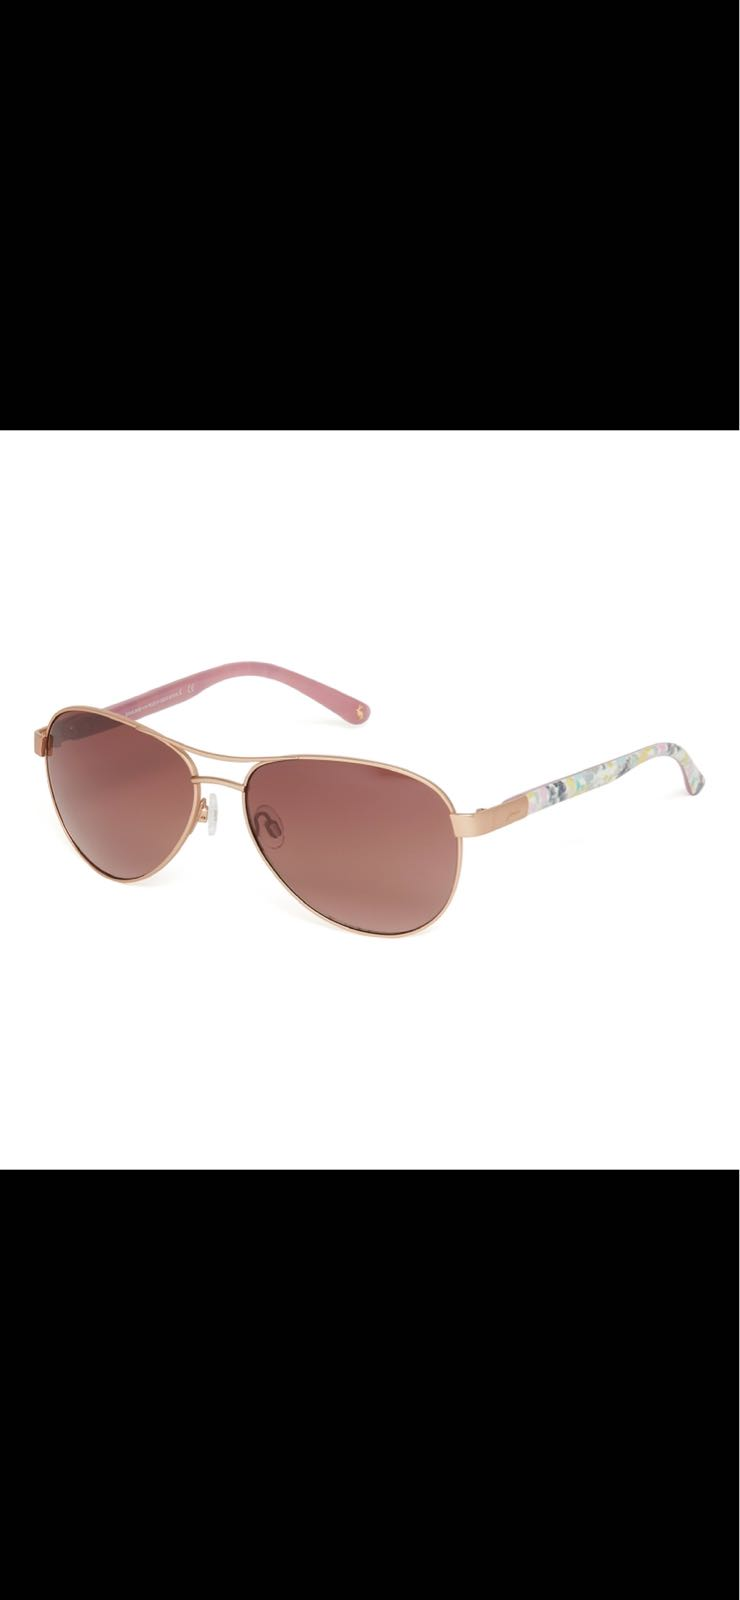 Joules aviator sunglasses rose Gold frame was £75